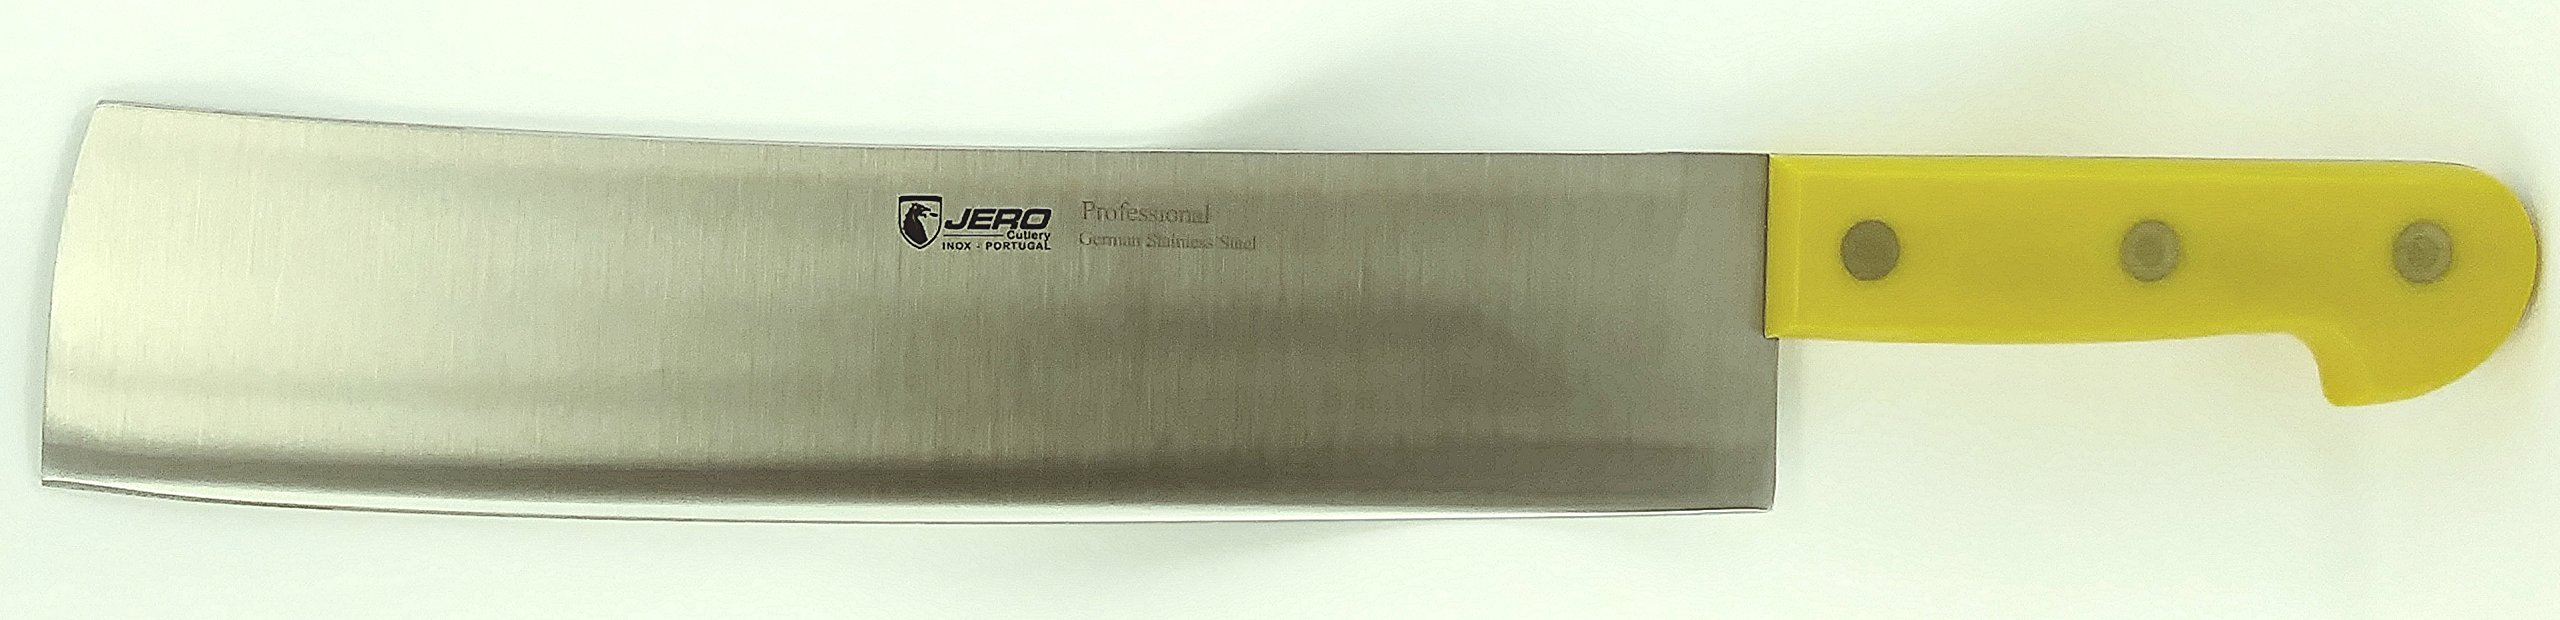 Jero Professional Matadouro Cleaver - 12.5'' Blade Length - German High-Carbon Schwerlast Stainless Steel Thick Spine Blade - Full Tang With Riveted Extreme Duty Impact Resistant Polymer Handle